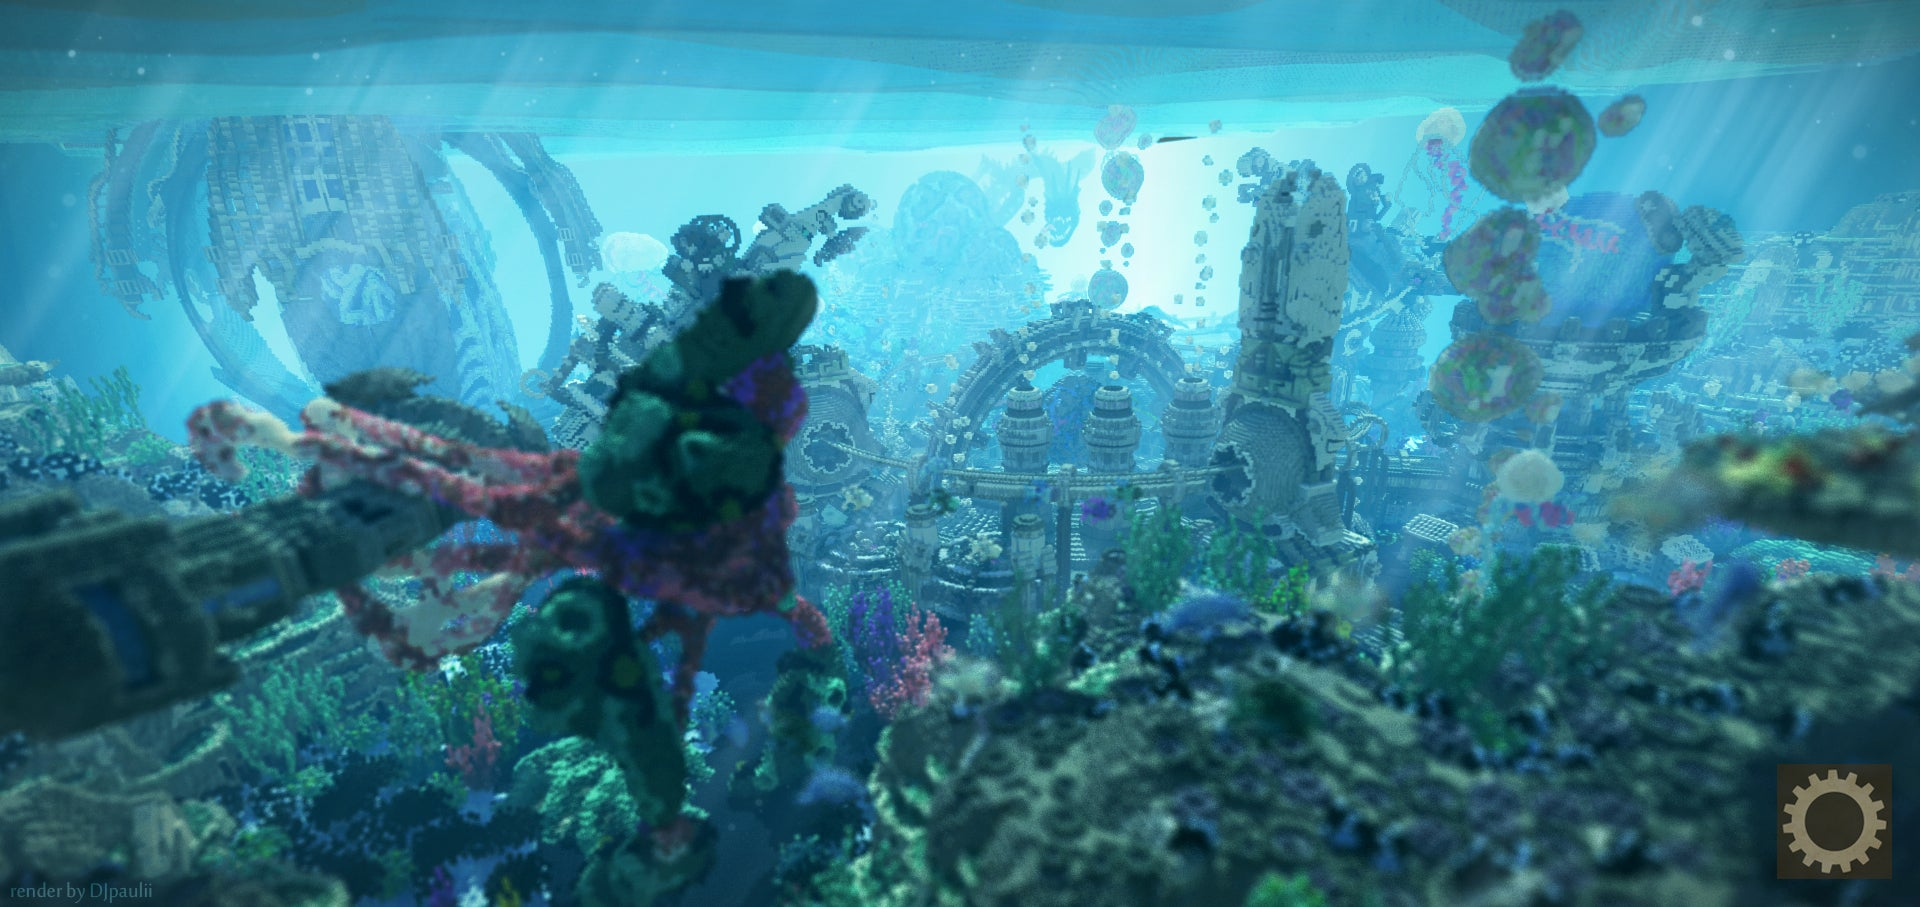 deep sea wonderland built in minecraft looks incredible